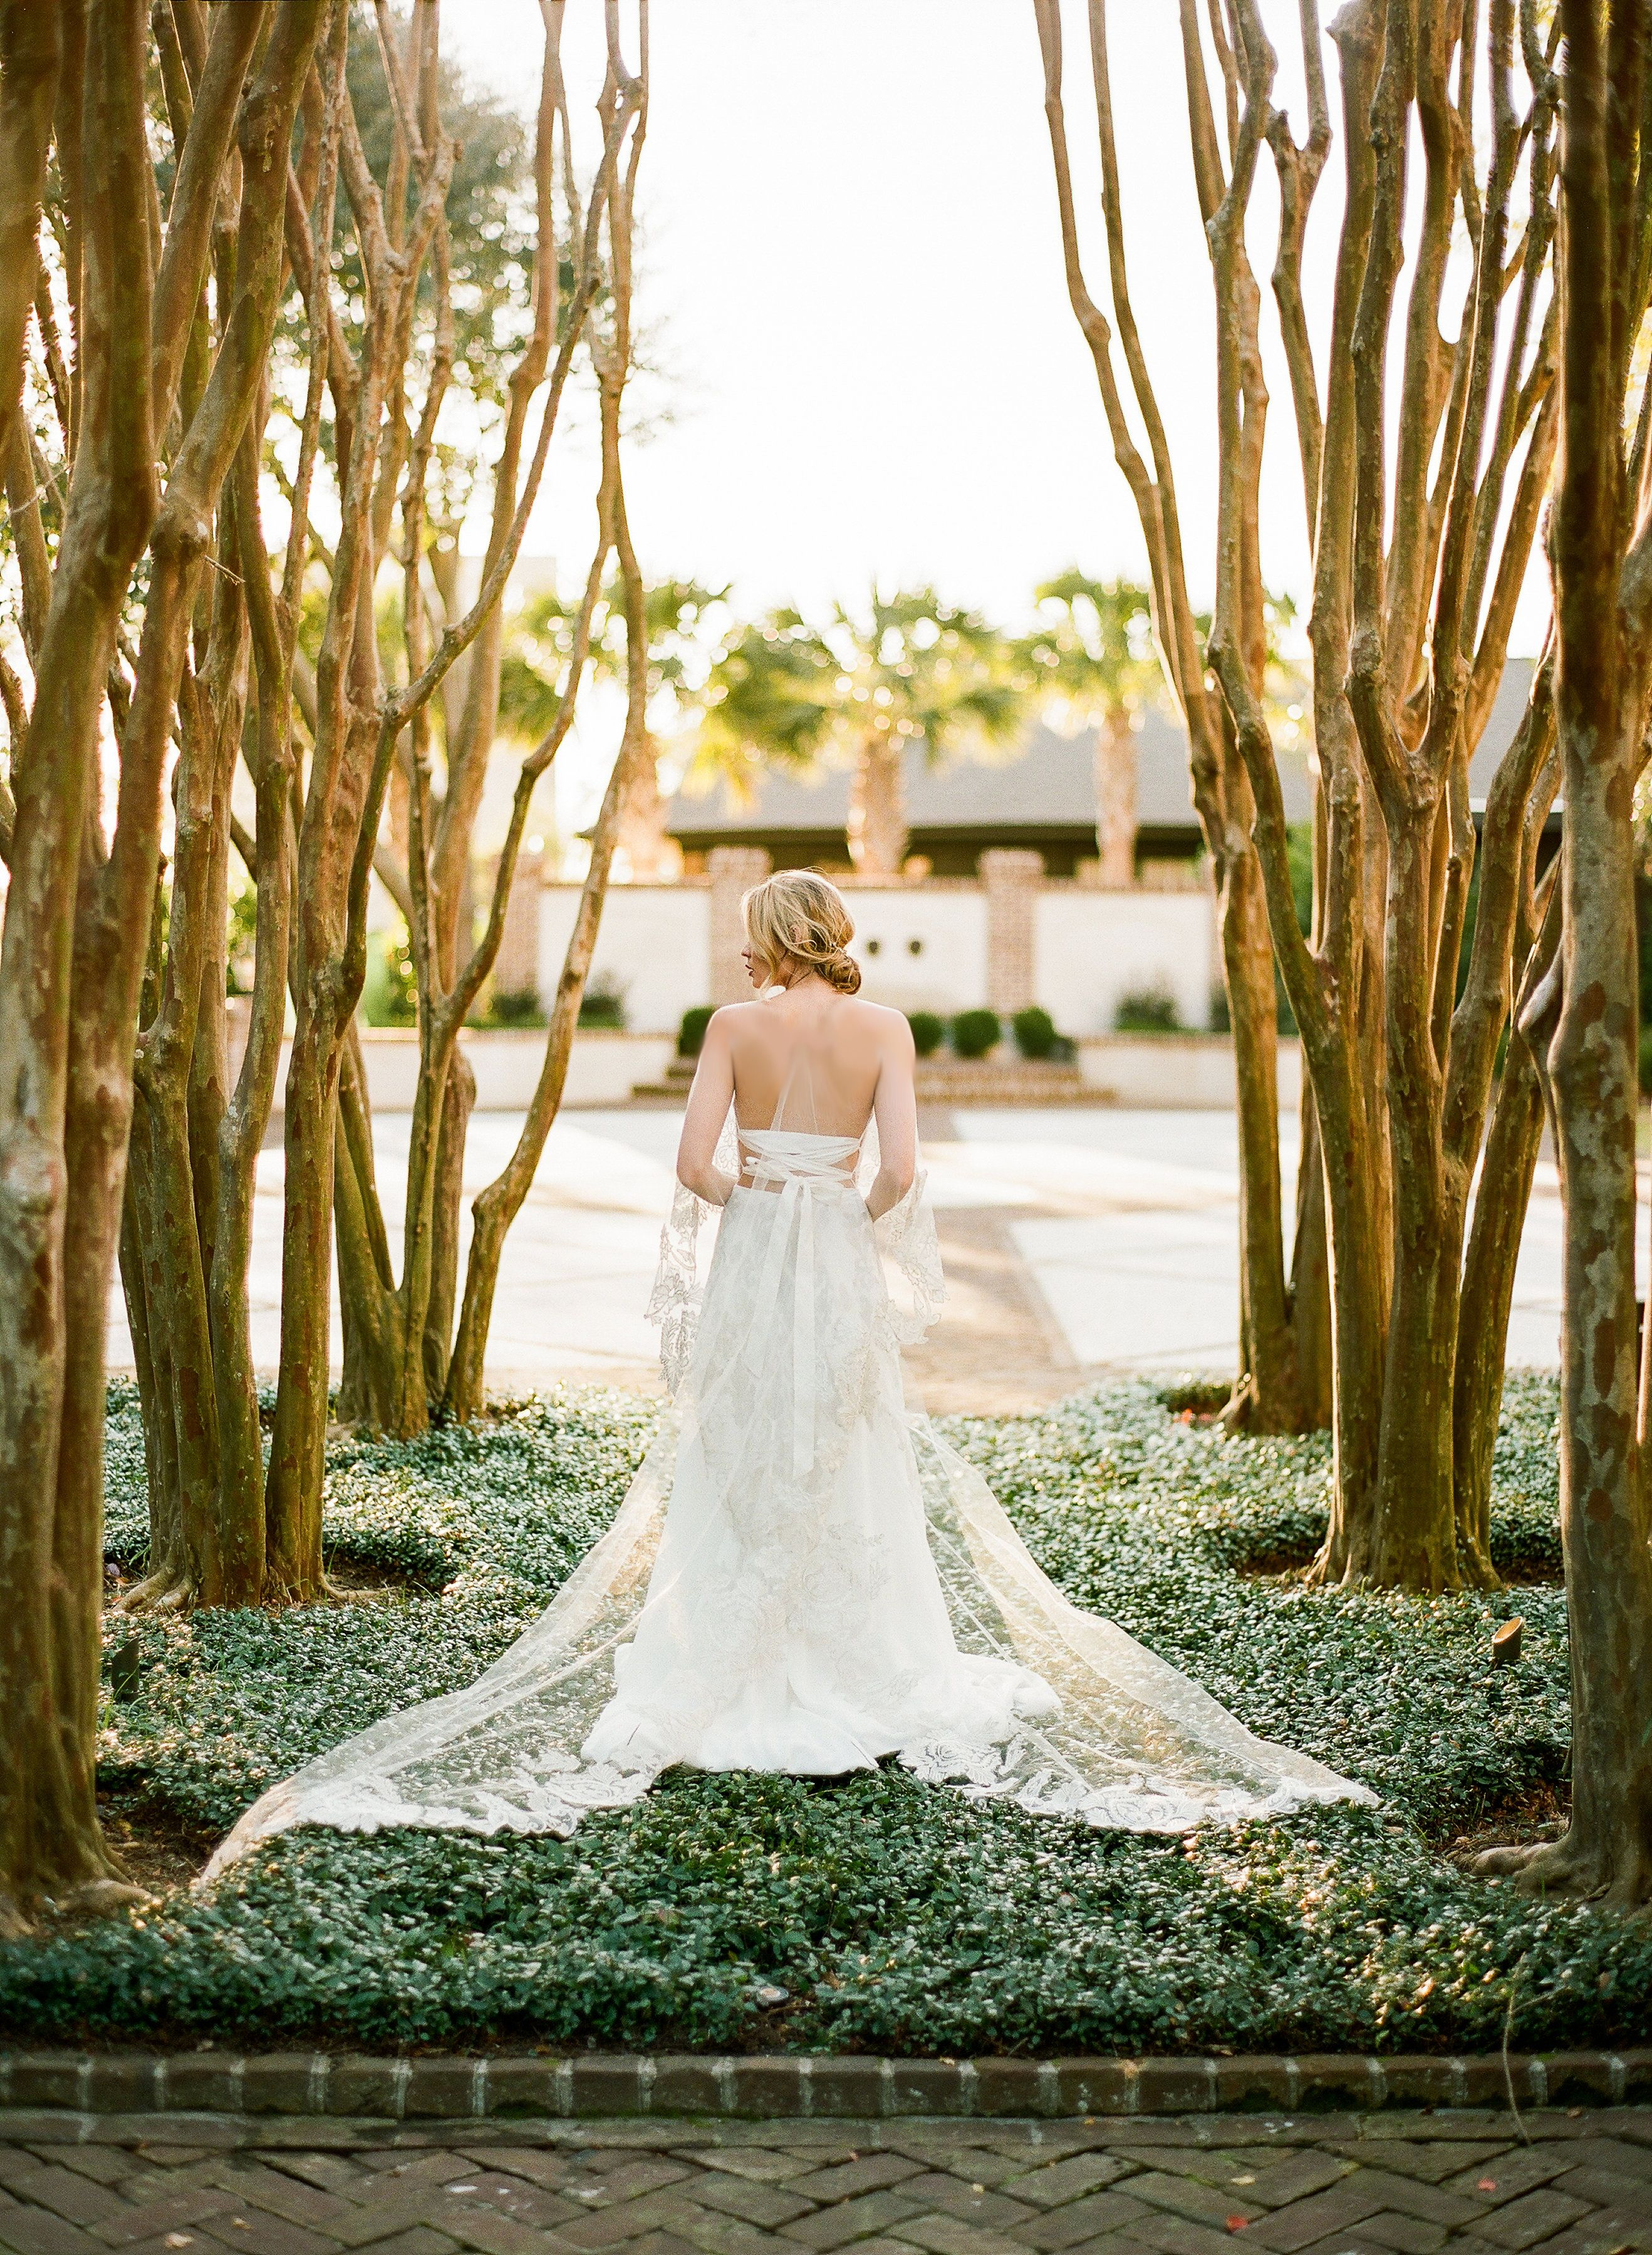 Bowieite | Emily Kotarski Bridal | Strapless off-the-shoulder lace and chiffon gown with lace appliqué, ballet back, and cape